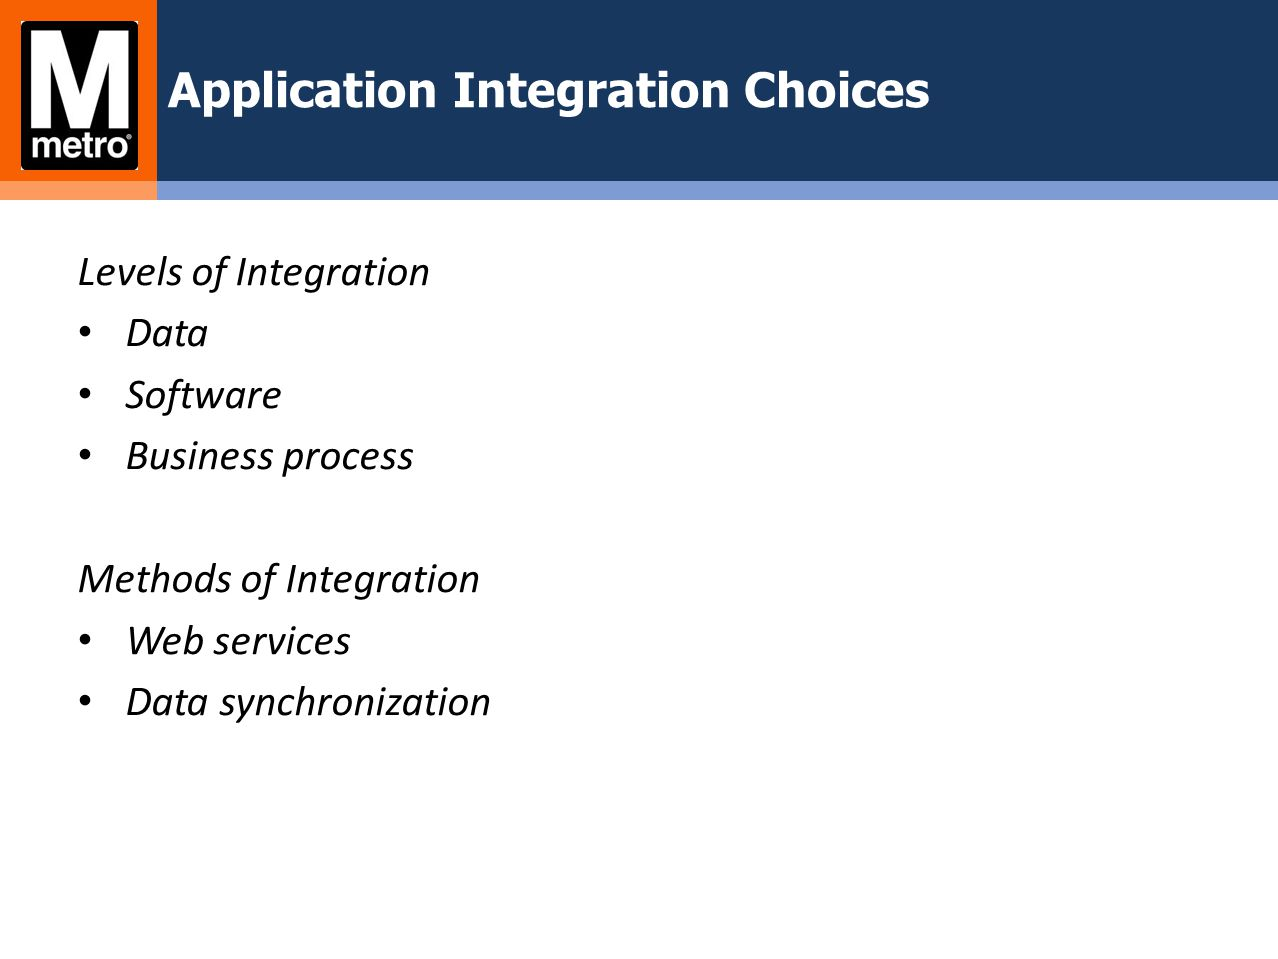 Application Integration Choices